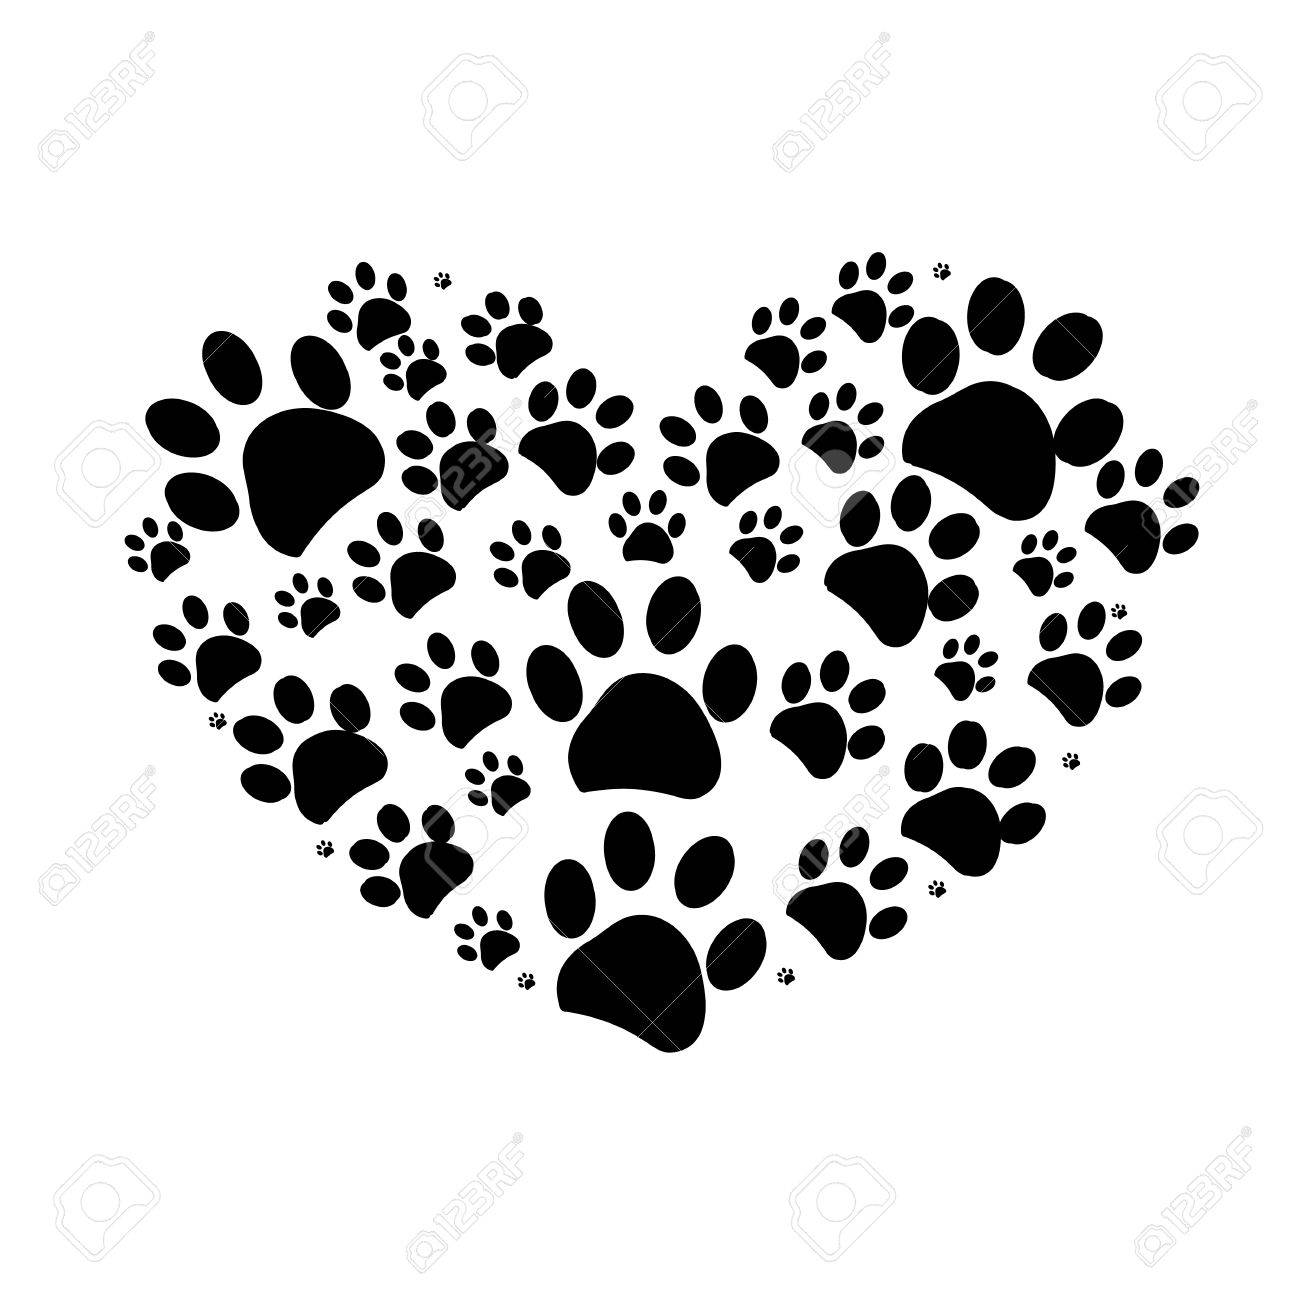 Impression De Patte De Chien En Arriere Plan De Coeur Vector Illustration